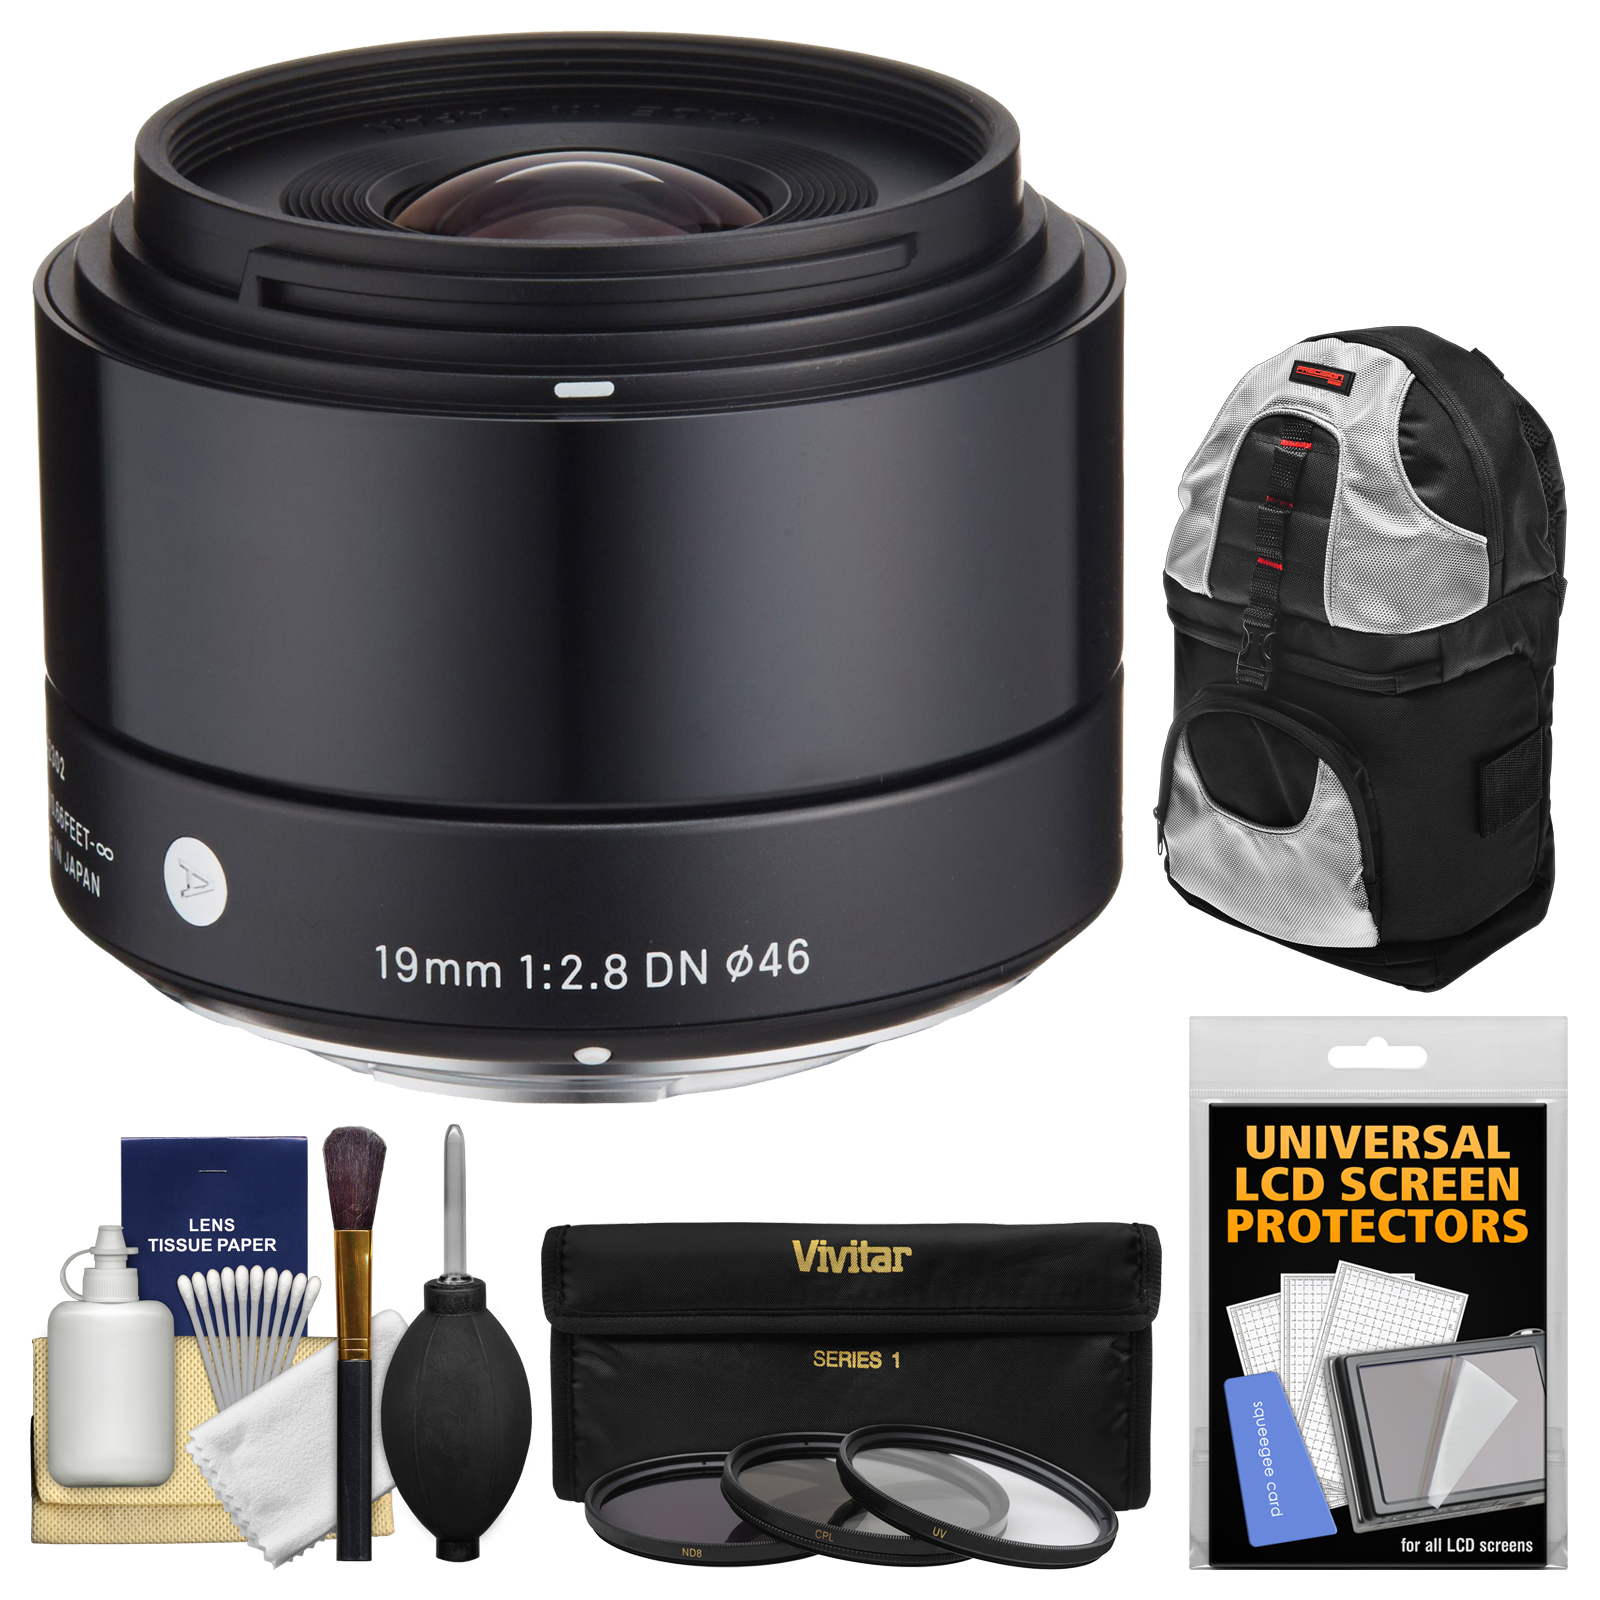 Sigma 19mm f/2.8 EX DN Art Lens with 3 UV/CPL/ND8 Filters + Sling Backpack + Kit for Olympus / Panasonic Micro 4/3 Digital Cameras